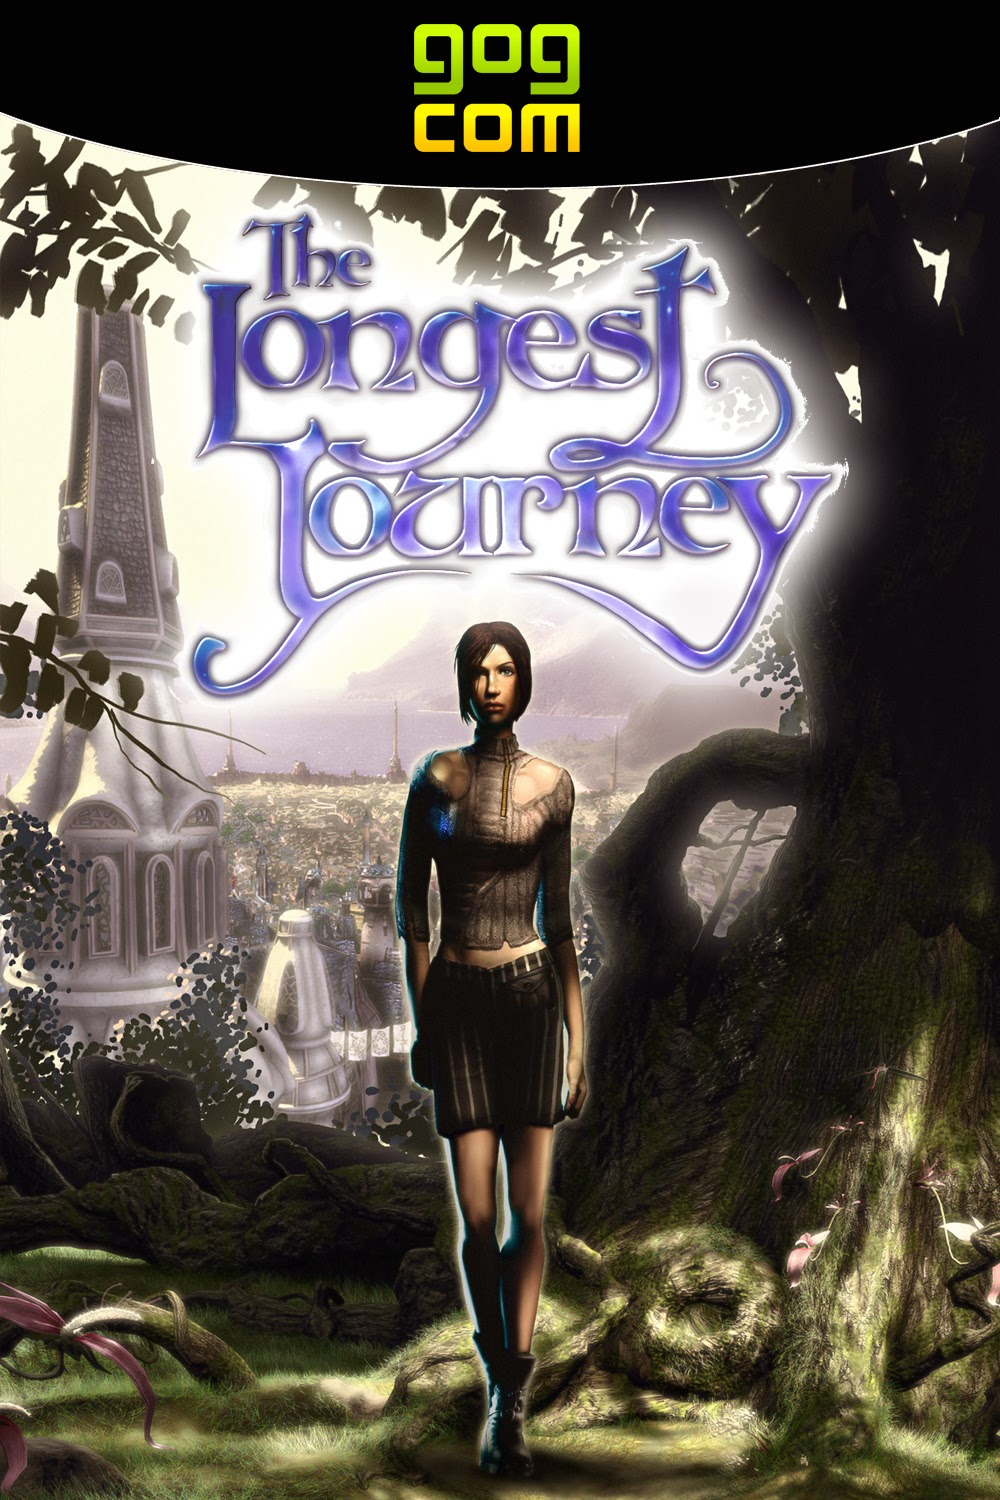 http://www.gog.com/game/the_longest_journey